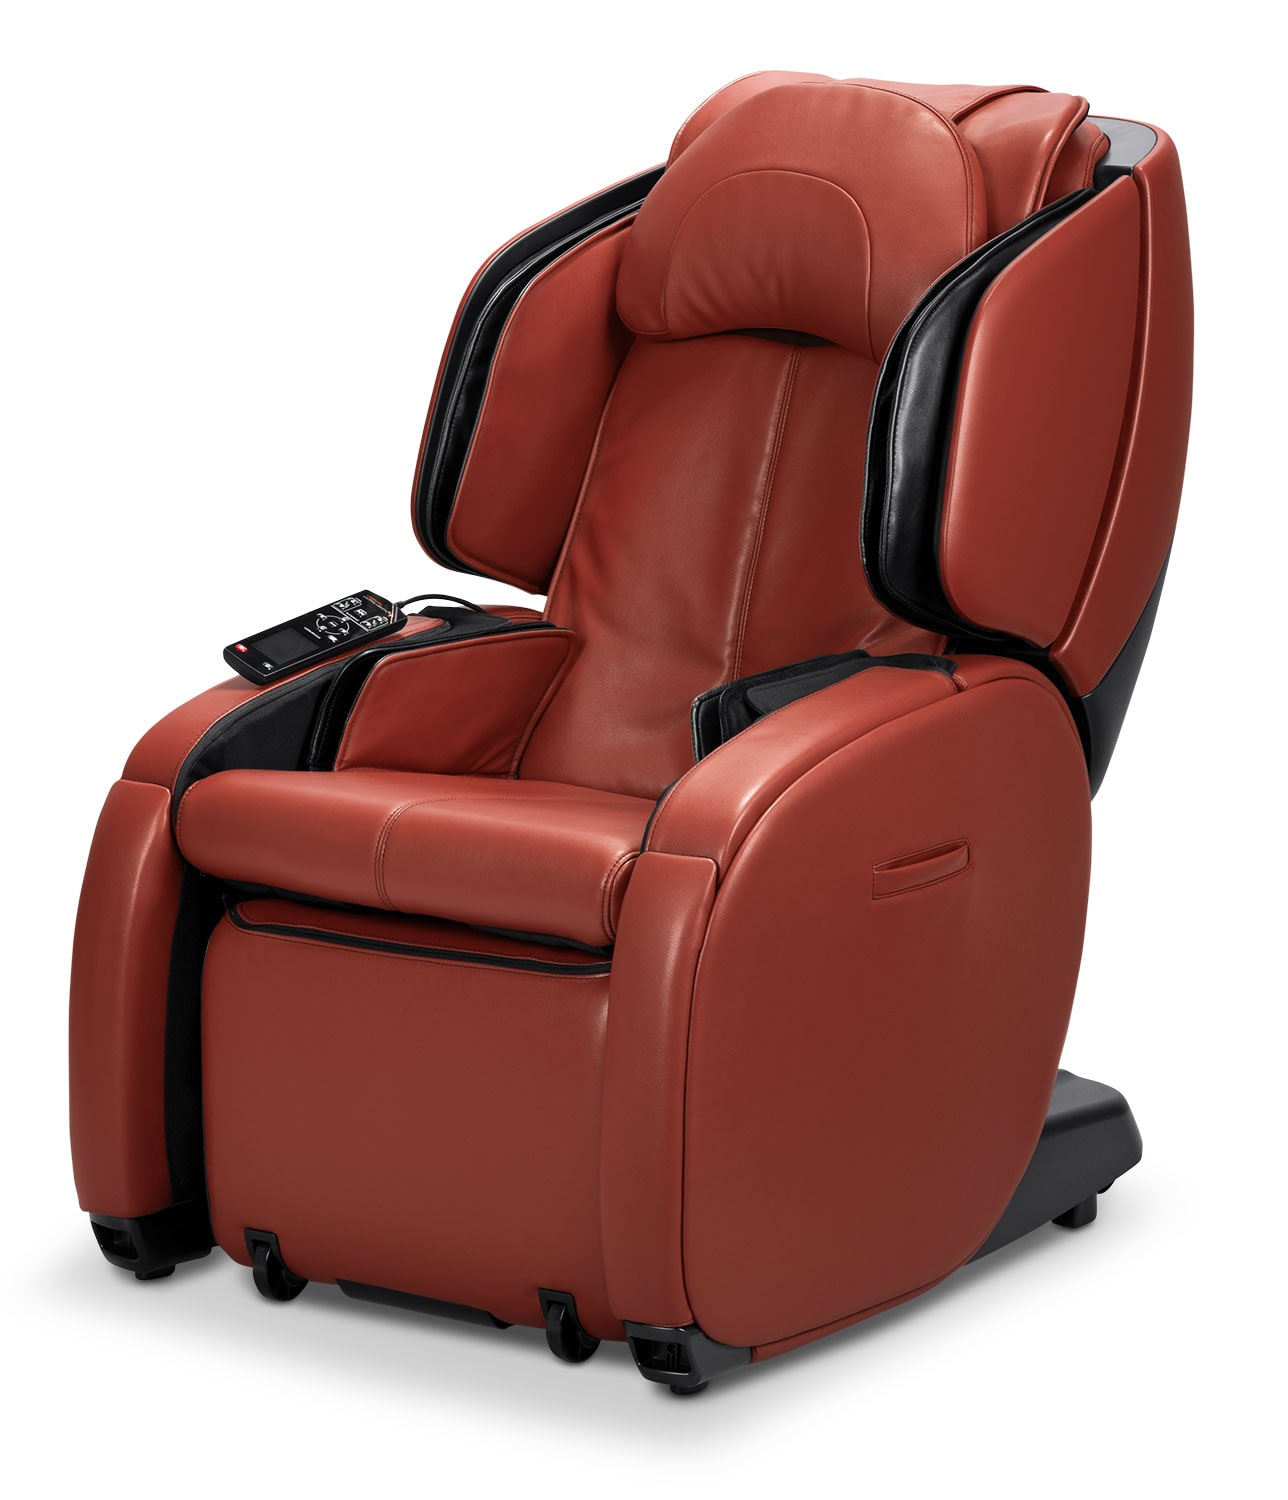 Fauteuil de massage AcuTouch(MD) 6.0 de Human Touch(MD) avec programme d'auto-immersion - rouge